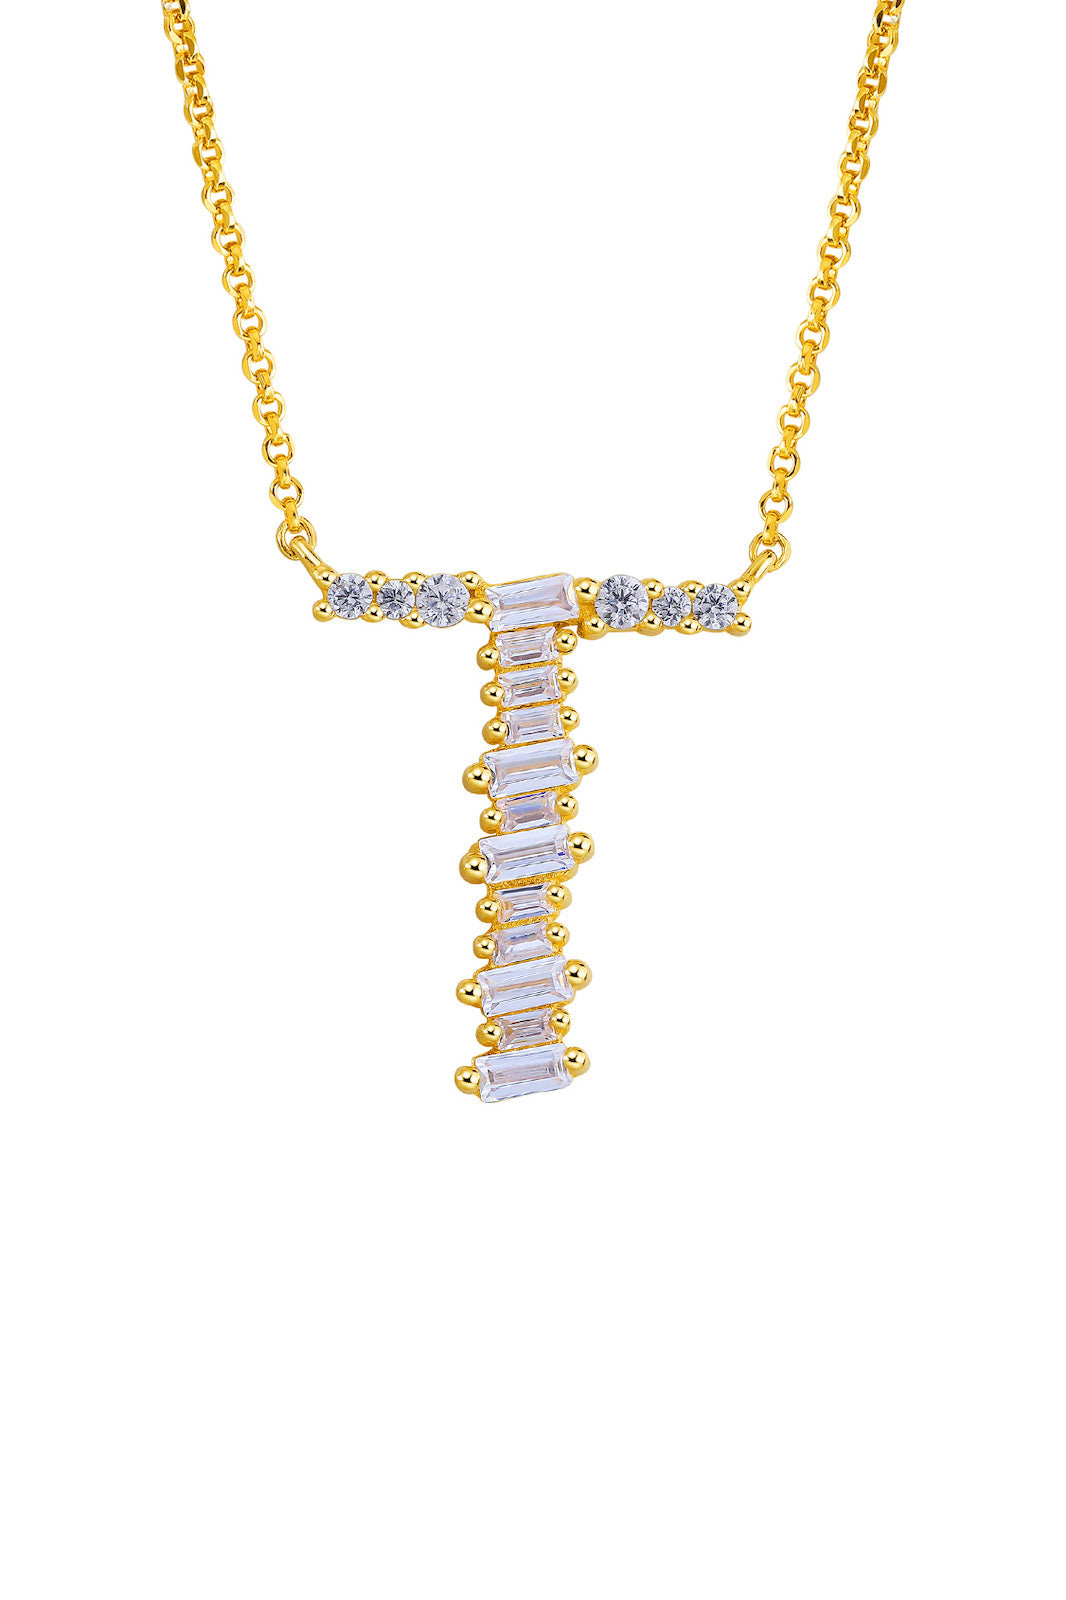 Gold Plated Sterling Silver Initial Necklace - Letter T Detail